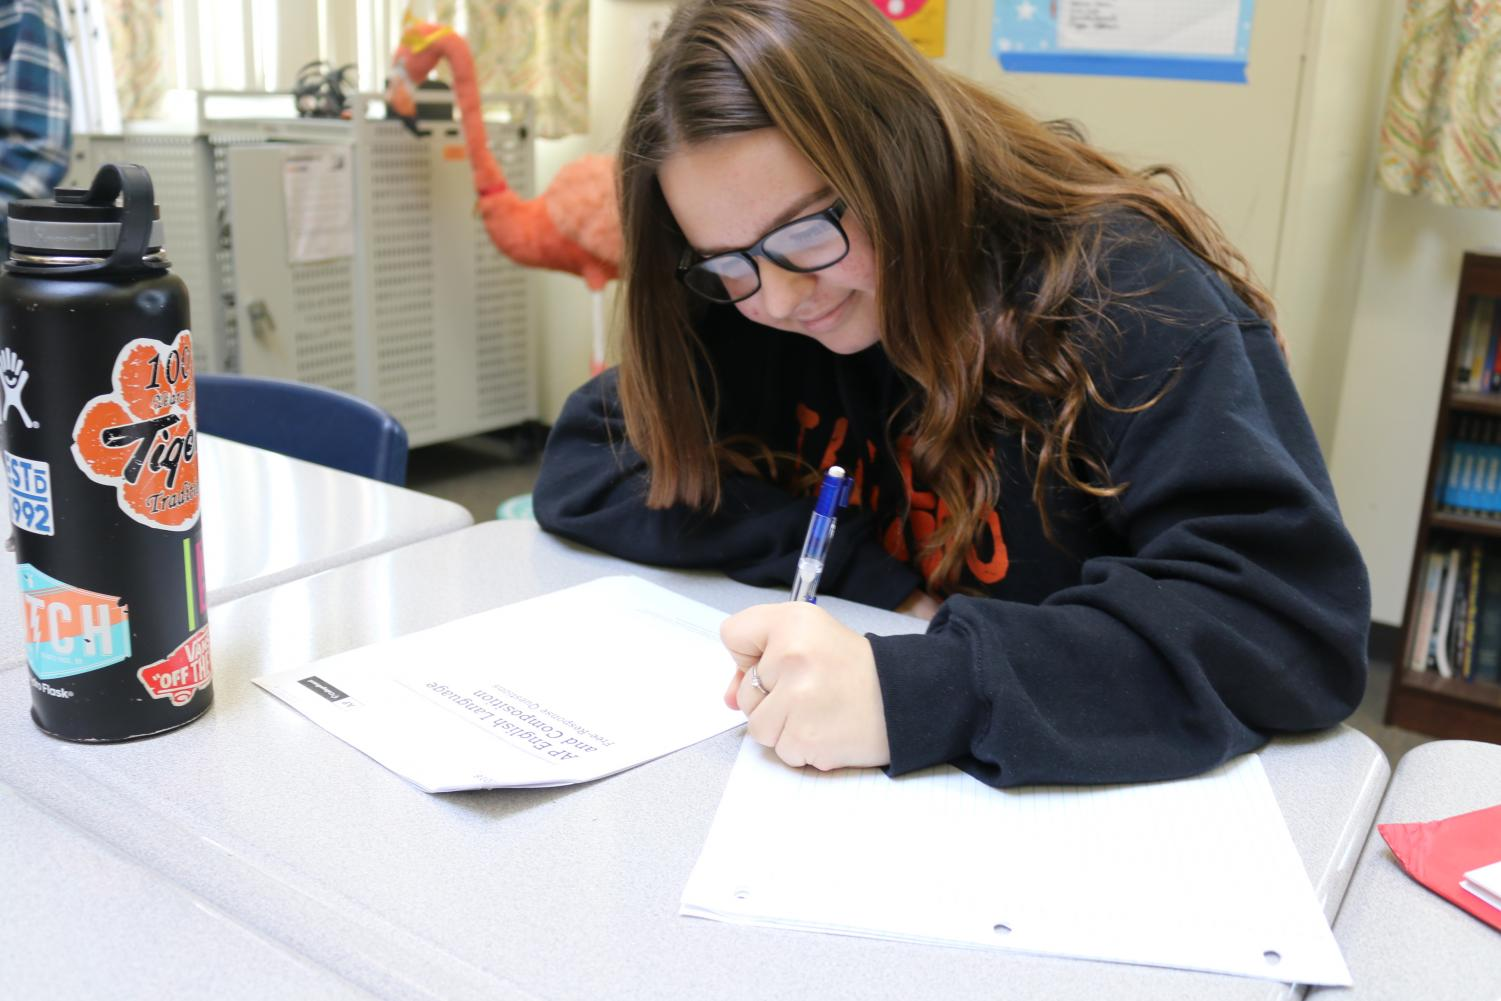 Junior AP student Emily Sullivan takes an AP practice exam in Jamie Handling's AP Language & Composition class.